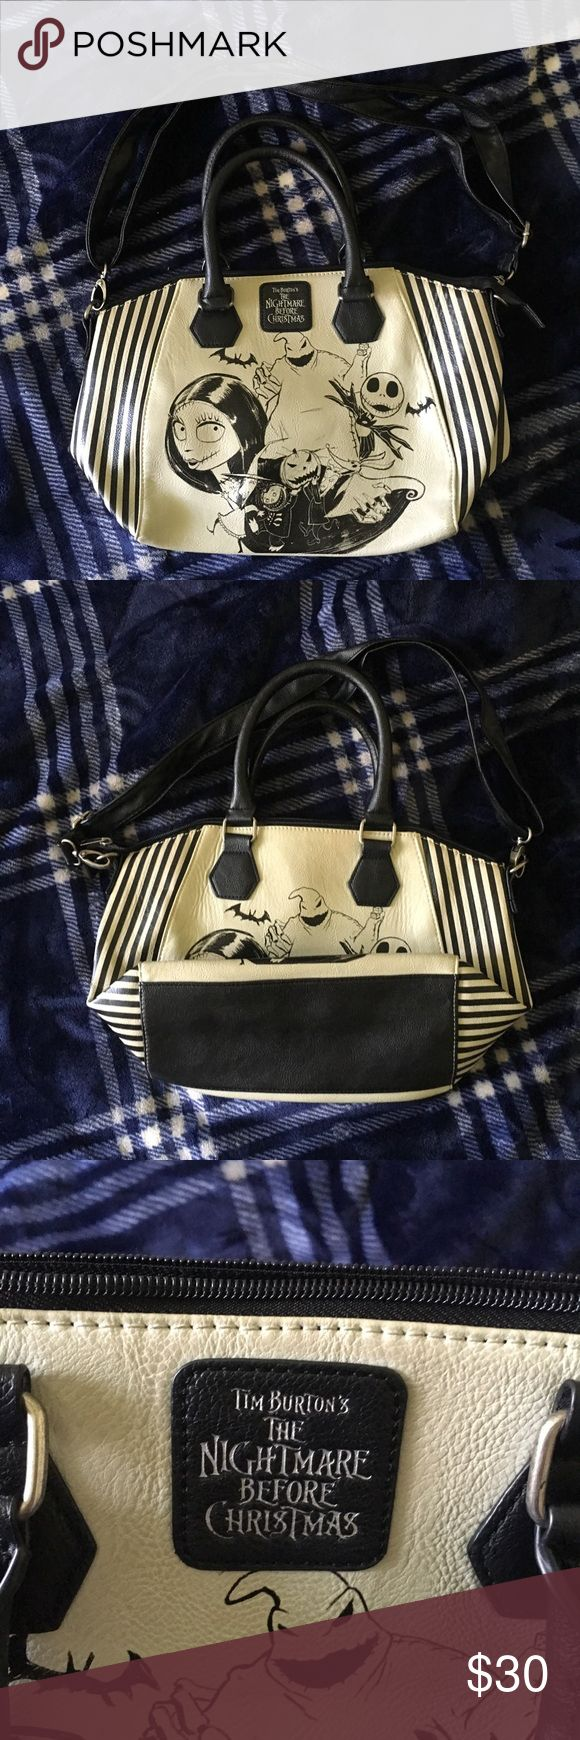 Loungefly The Nightmare Before Christmas Purse Sported this Awesome Satchel Couple Times, Still good Purse, it's a keeper and eye catching absolutely hate to part but I need to. Official Loungefly from Hot Topic. Hot Topic Bags Satchels